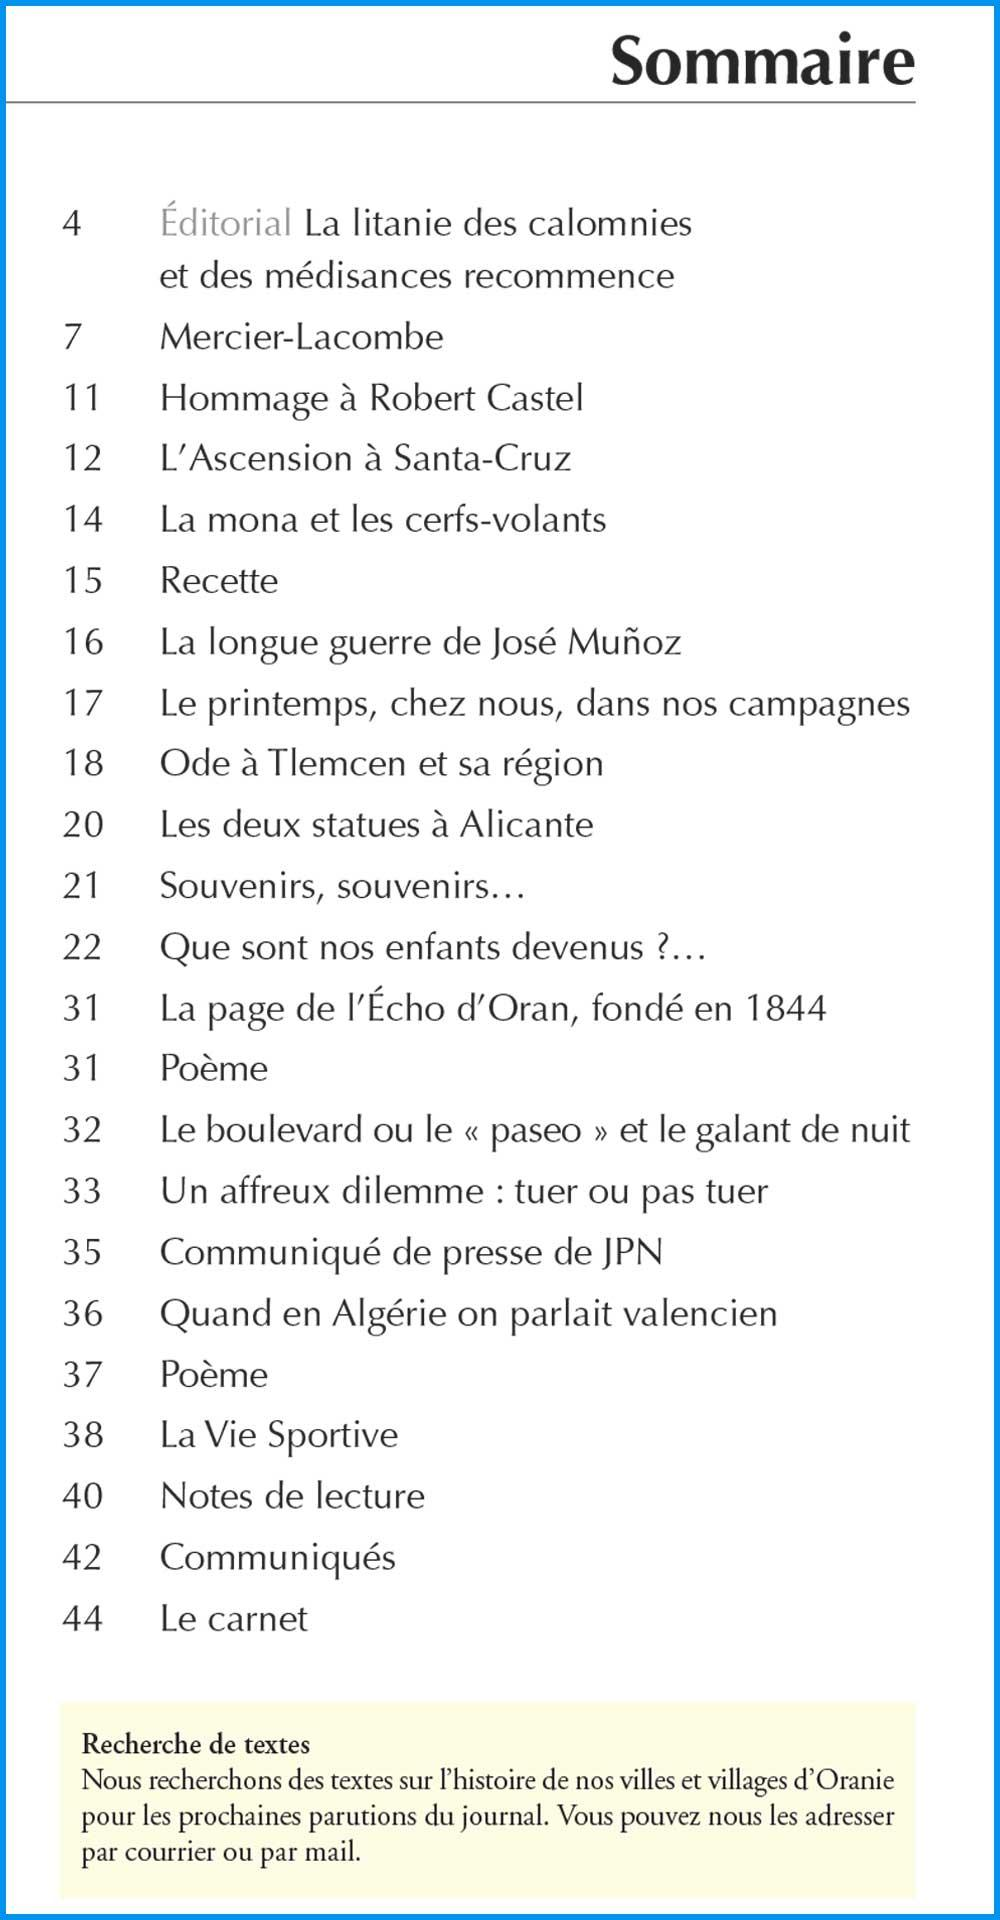 393 sommaire